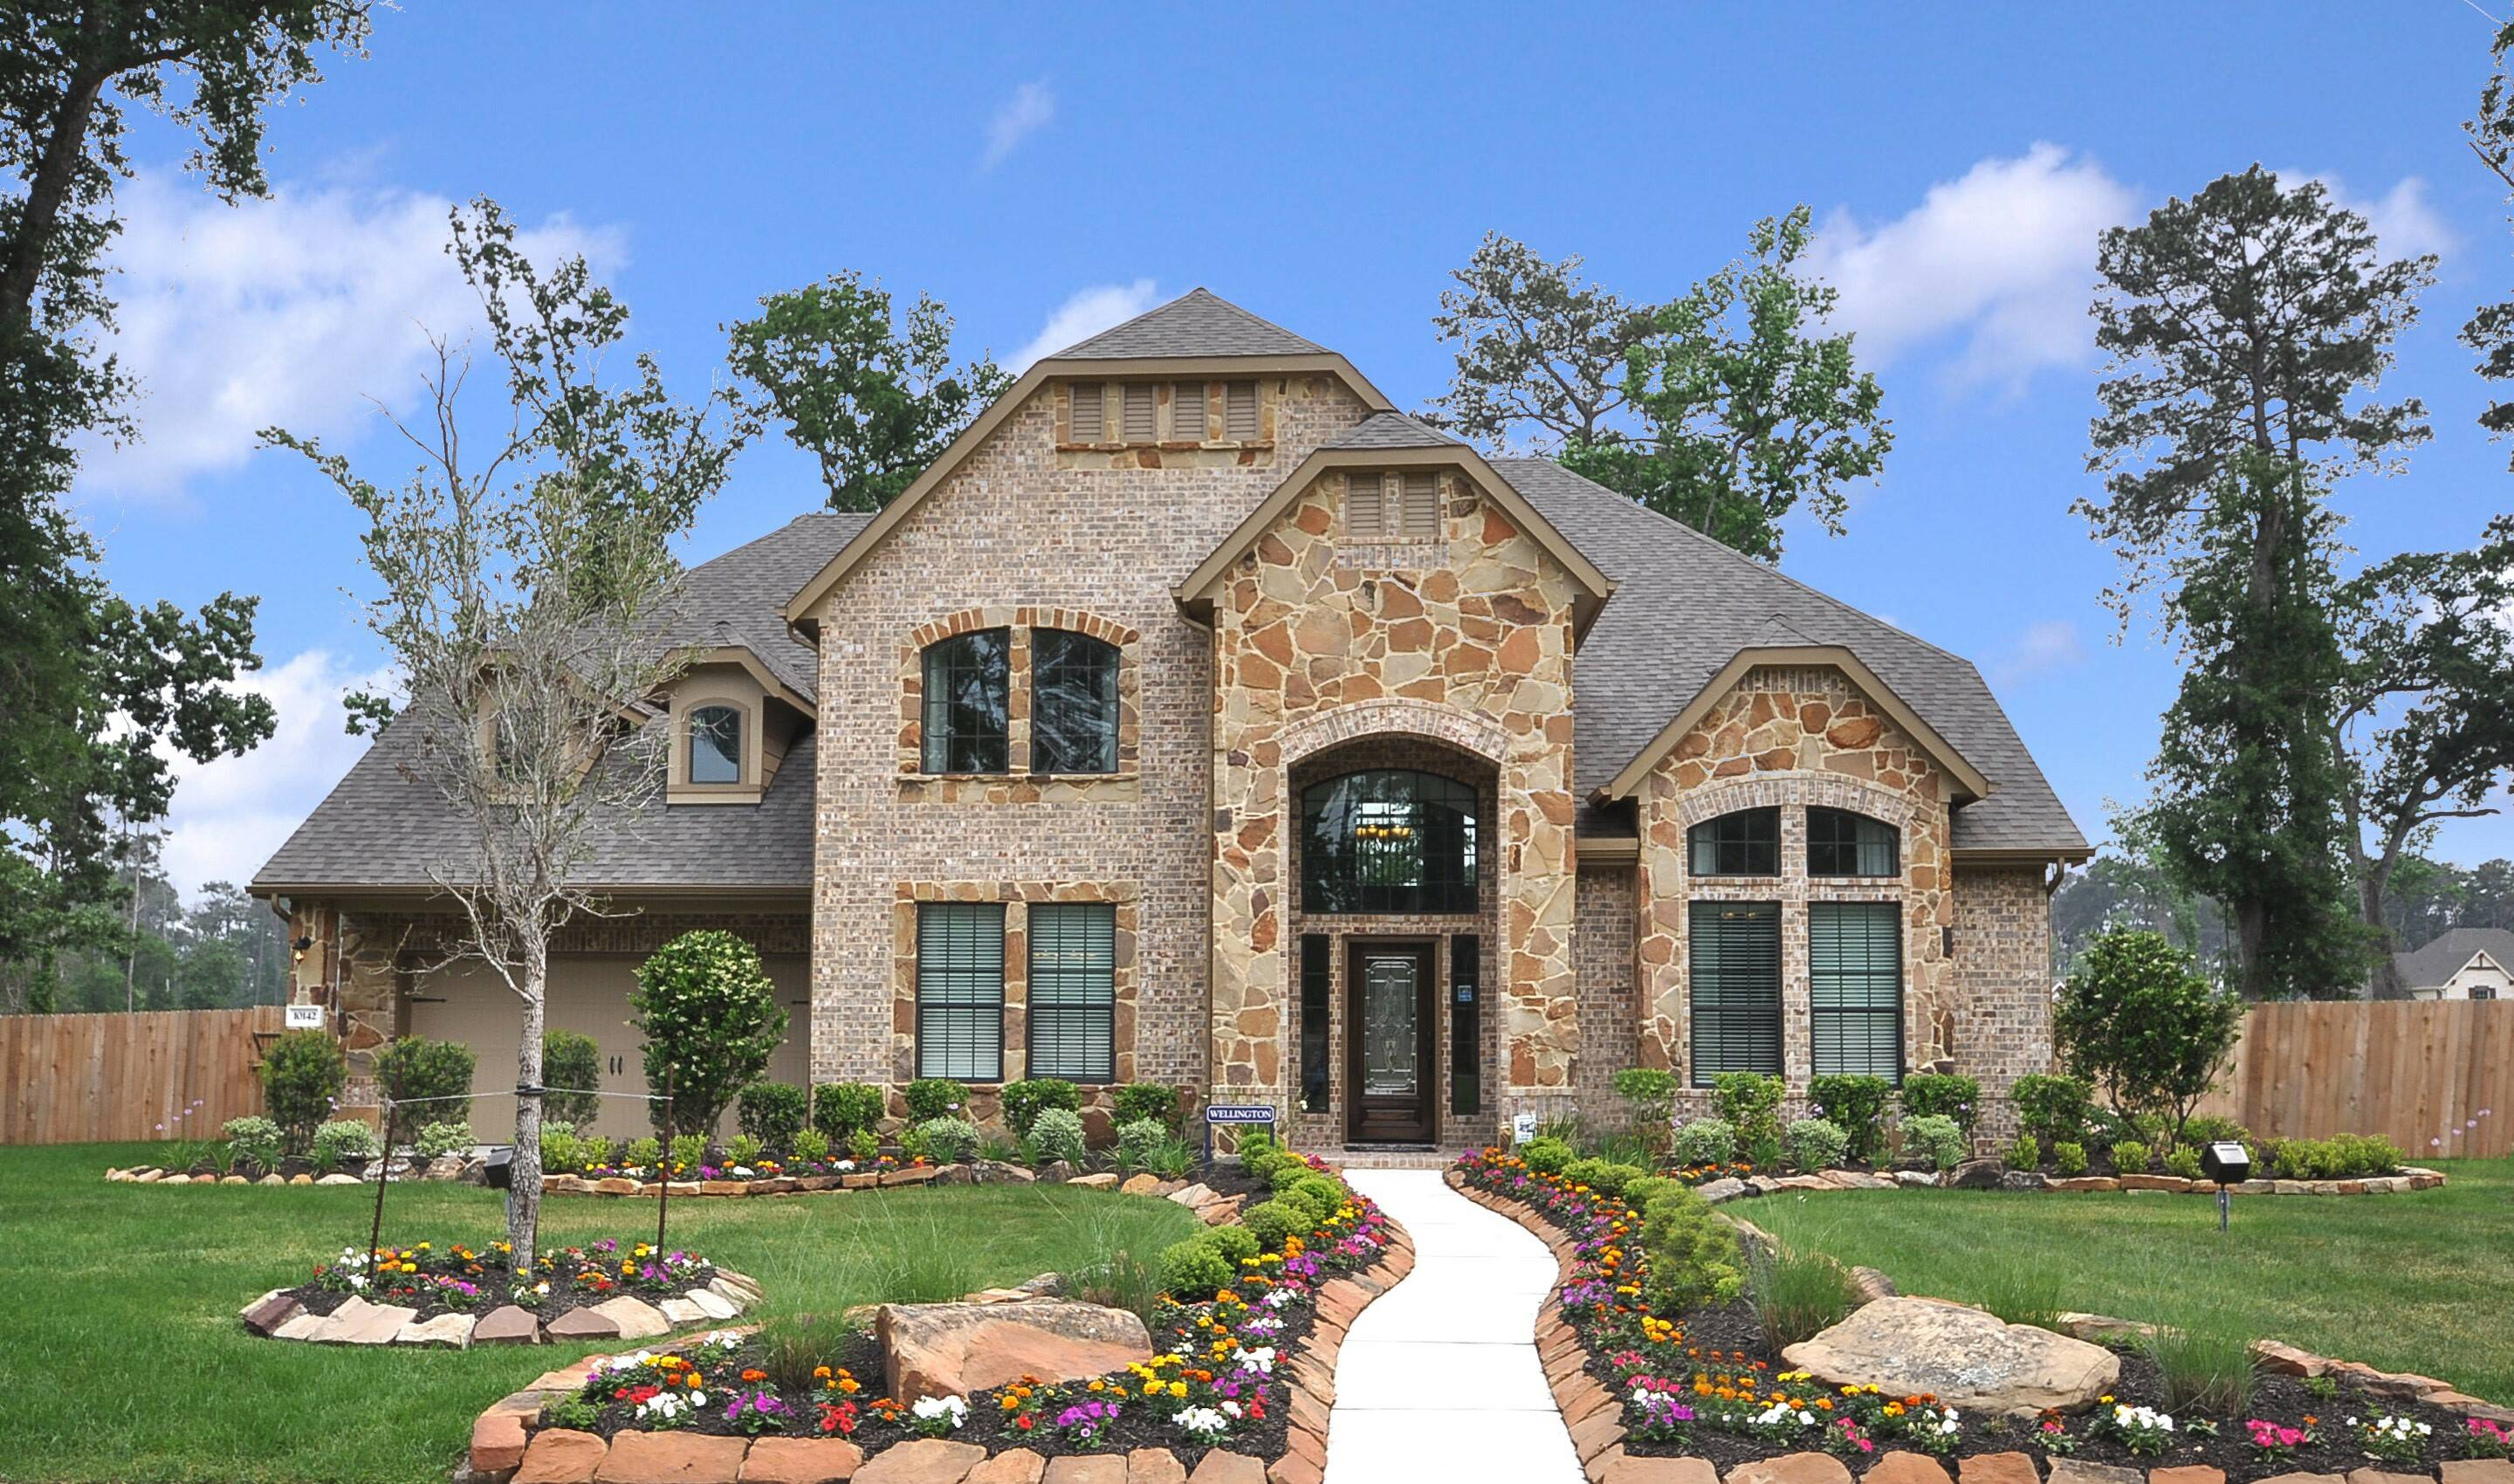 Awesome K Hovnanian Home Design Gallery Images - Amazing Design ...